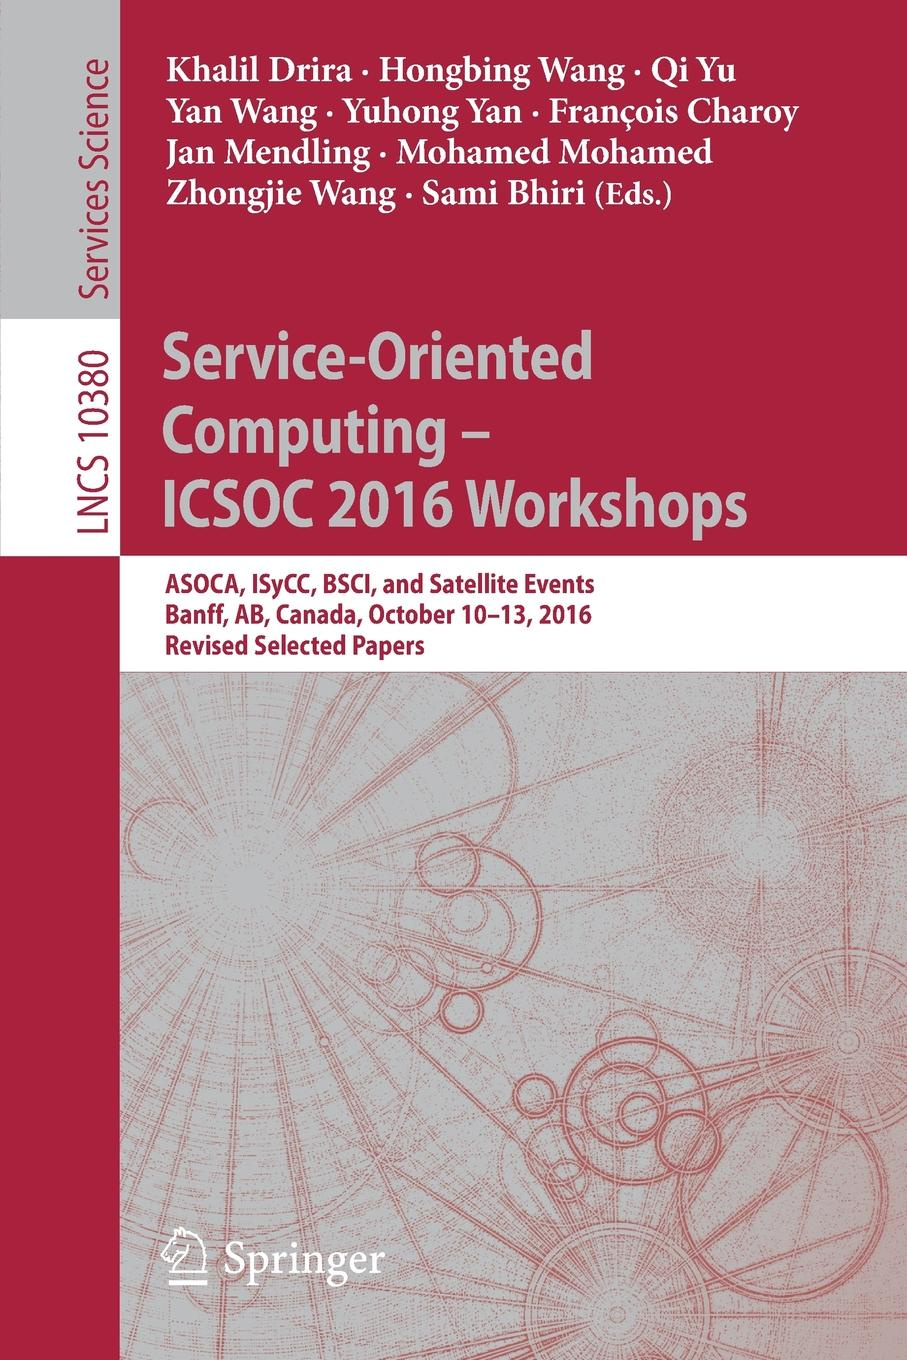 Service-Oriented Computing - ICSOC 2016 Workshops. ASOCA, ISyCC, BSCI, and Satellite Events, Banff, AB, Canada, October 10-13, 2016, Revised Selected Papers bubendorfer kris market oriented grid and utility computing